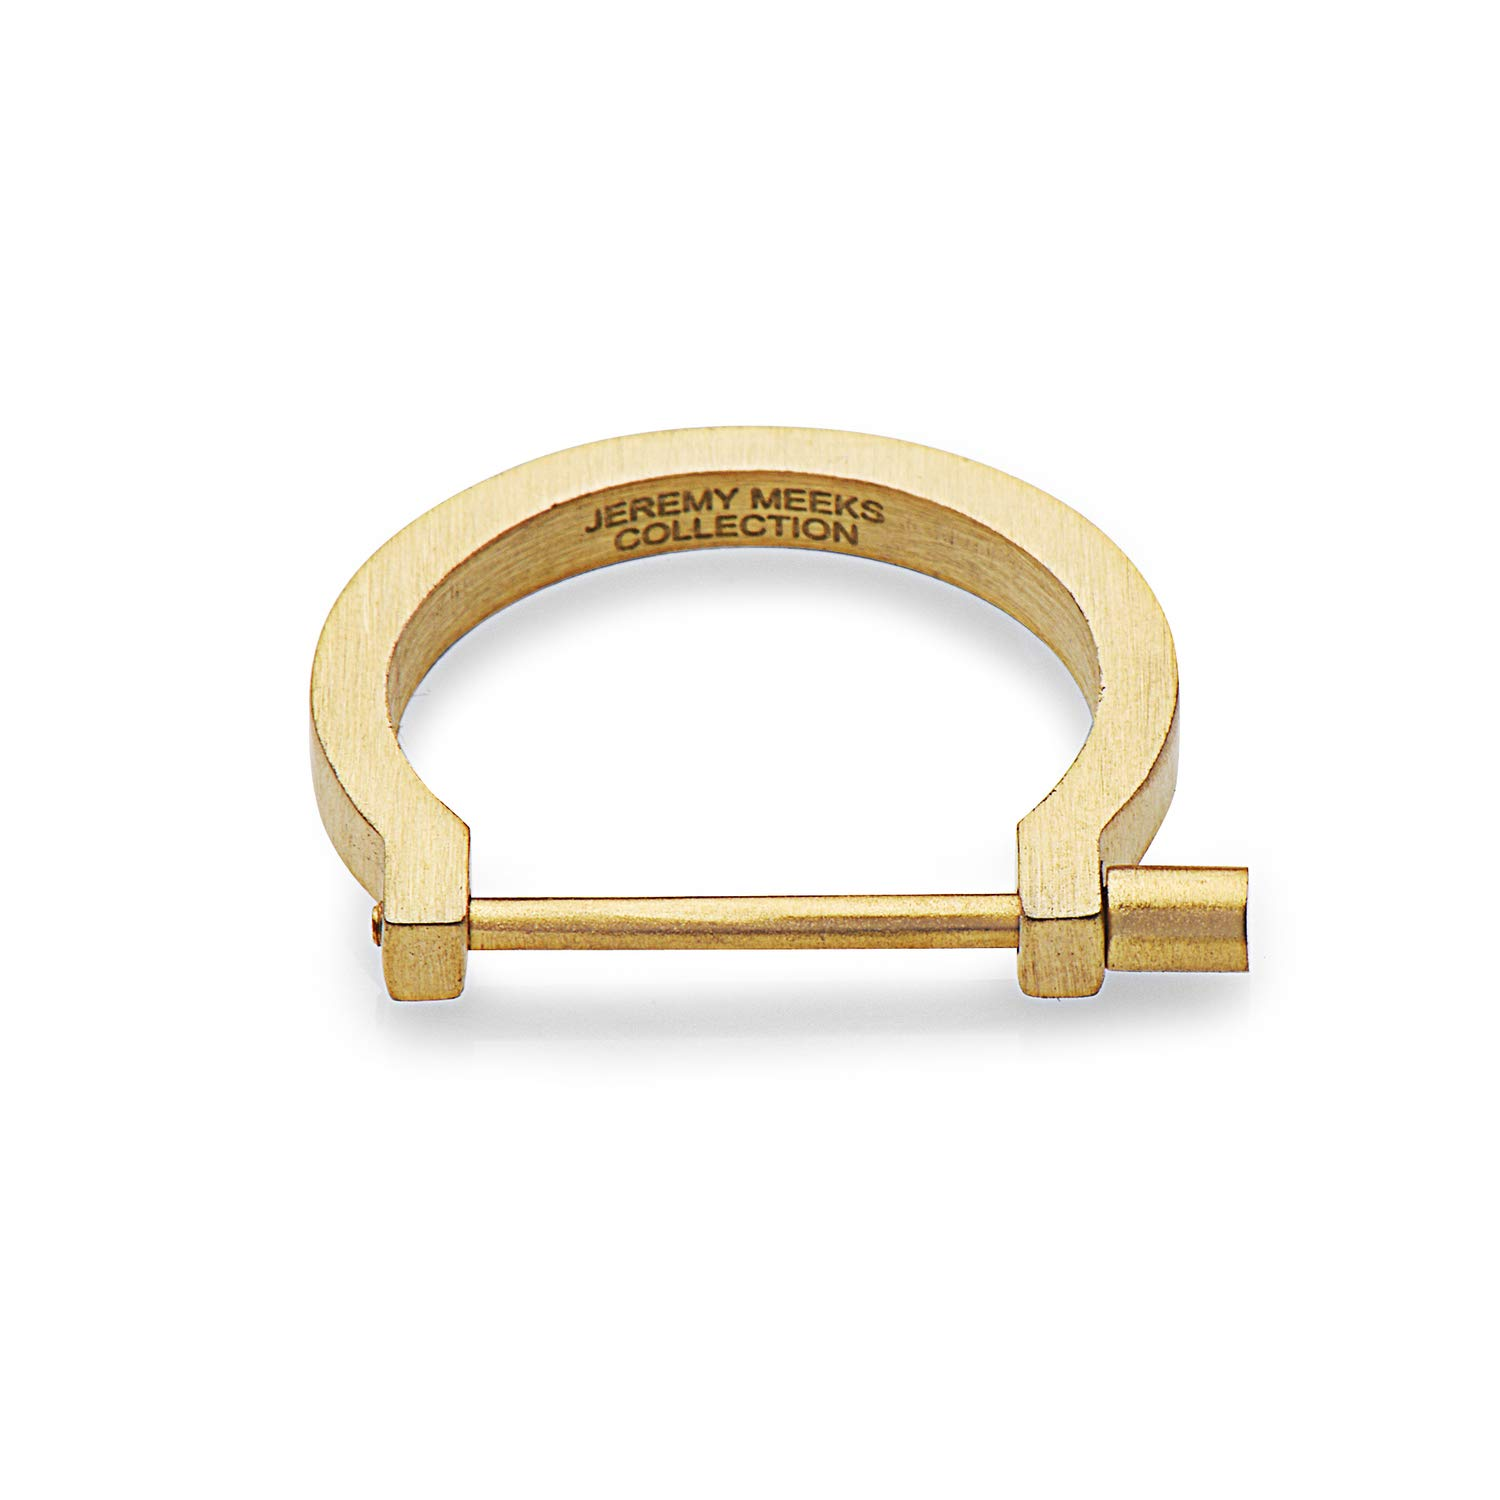 SEVEN50 Jeremy Meeks 4 in 1 Jewelry Collection - Modern Screw Cuff Rings, Matte Silver or Gold(Package Comes with 2 Rings and a Curb Chain) (Gold, 9)